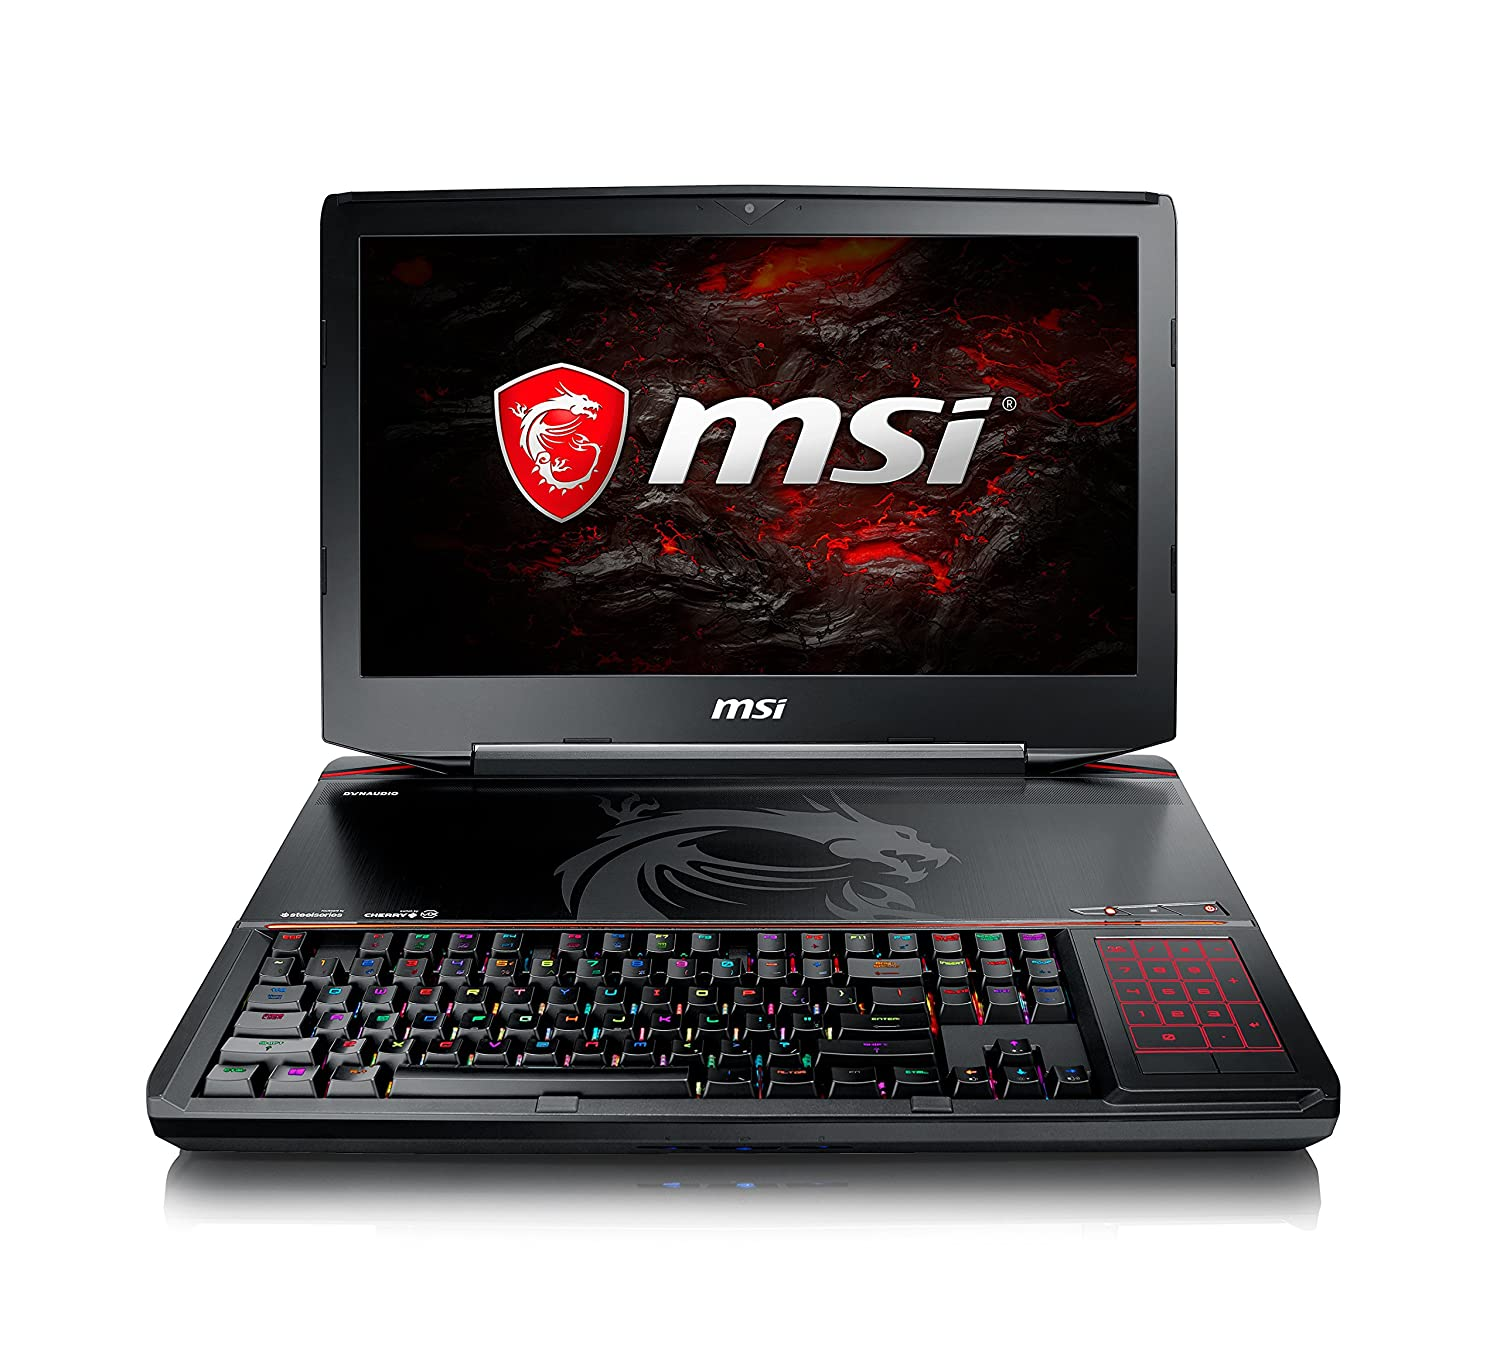 "MSI GT83VR TITAN SLI-253 IPS Level 18.4"" Hardcore Gaming Laptop GTX 1070 Dual SLI i7-7920HQ 16GB 1TB Windows 10 w/ Built-in Mechanical Keyboard"